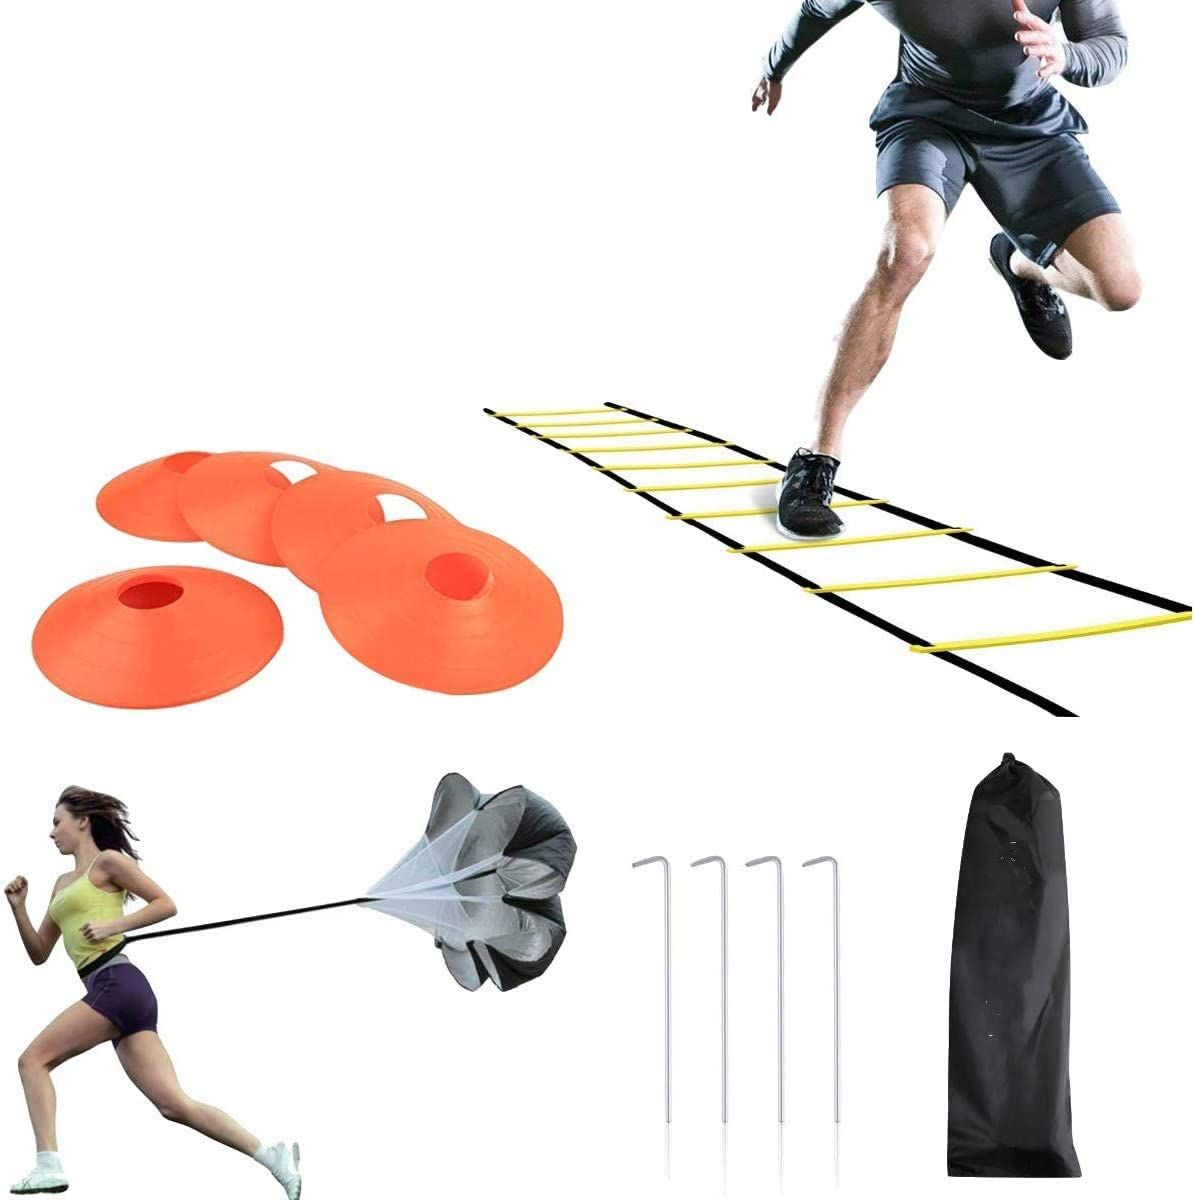 LYYZ Speed And Agility Training Set-Indoor And Outdoor TPE 6M 12-Step Adjustable Agility Ladder, 1 Resistance Parachute, 4 Metal Piles And Carrying Bag, Can Speed Up The Pace Improve Sports Skills